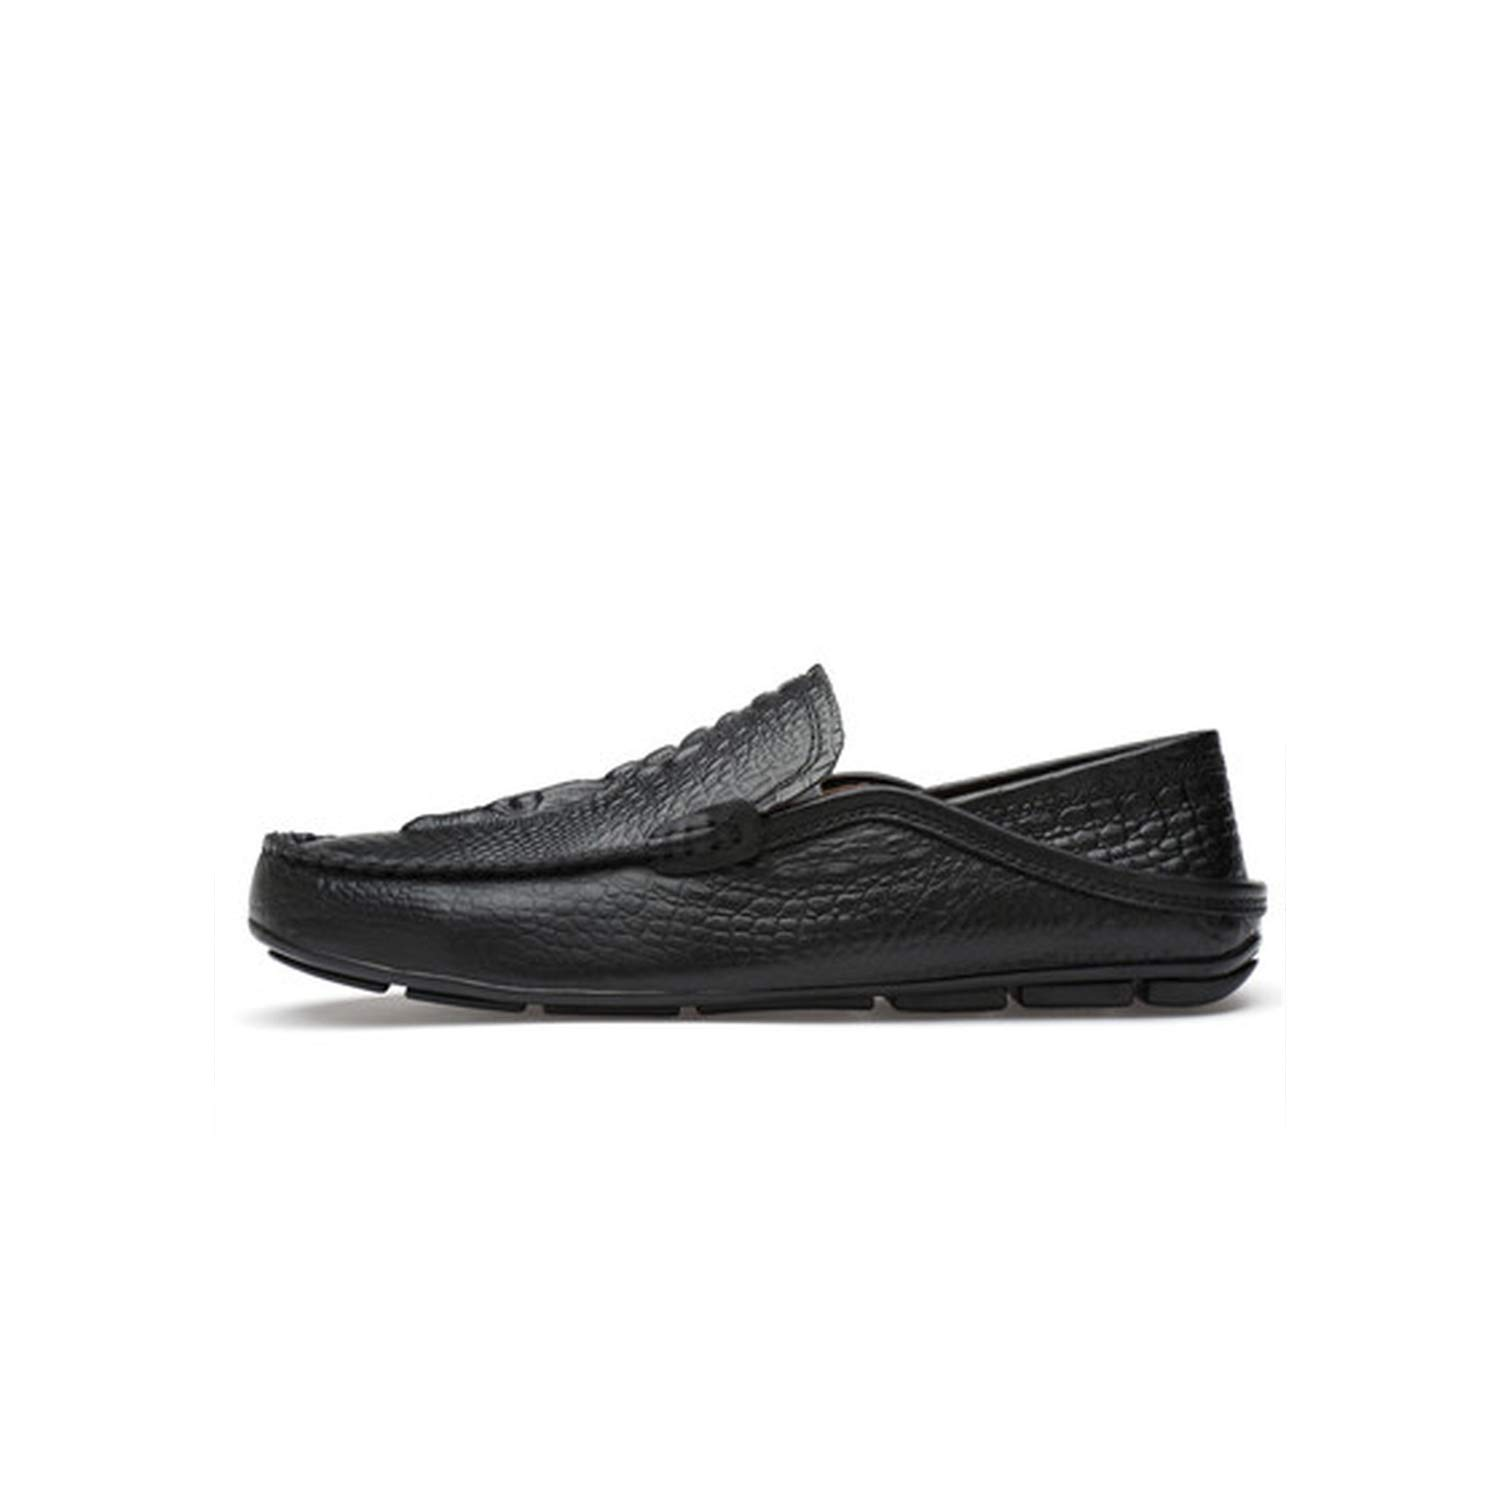 Black Crocodile Pattern Suede Leather Casual Beanie Driving shoes Men